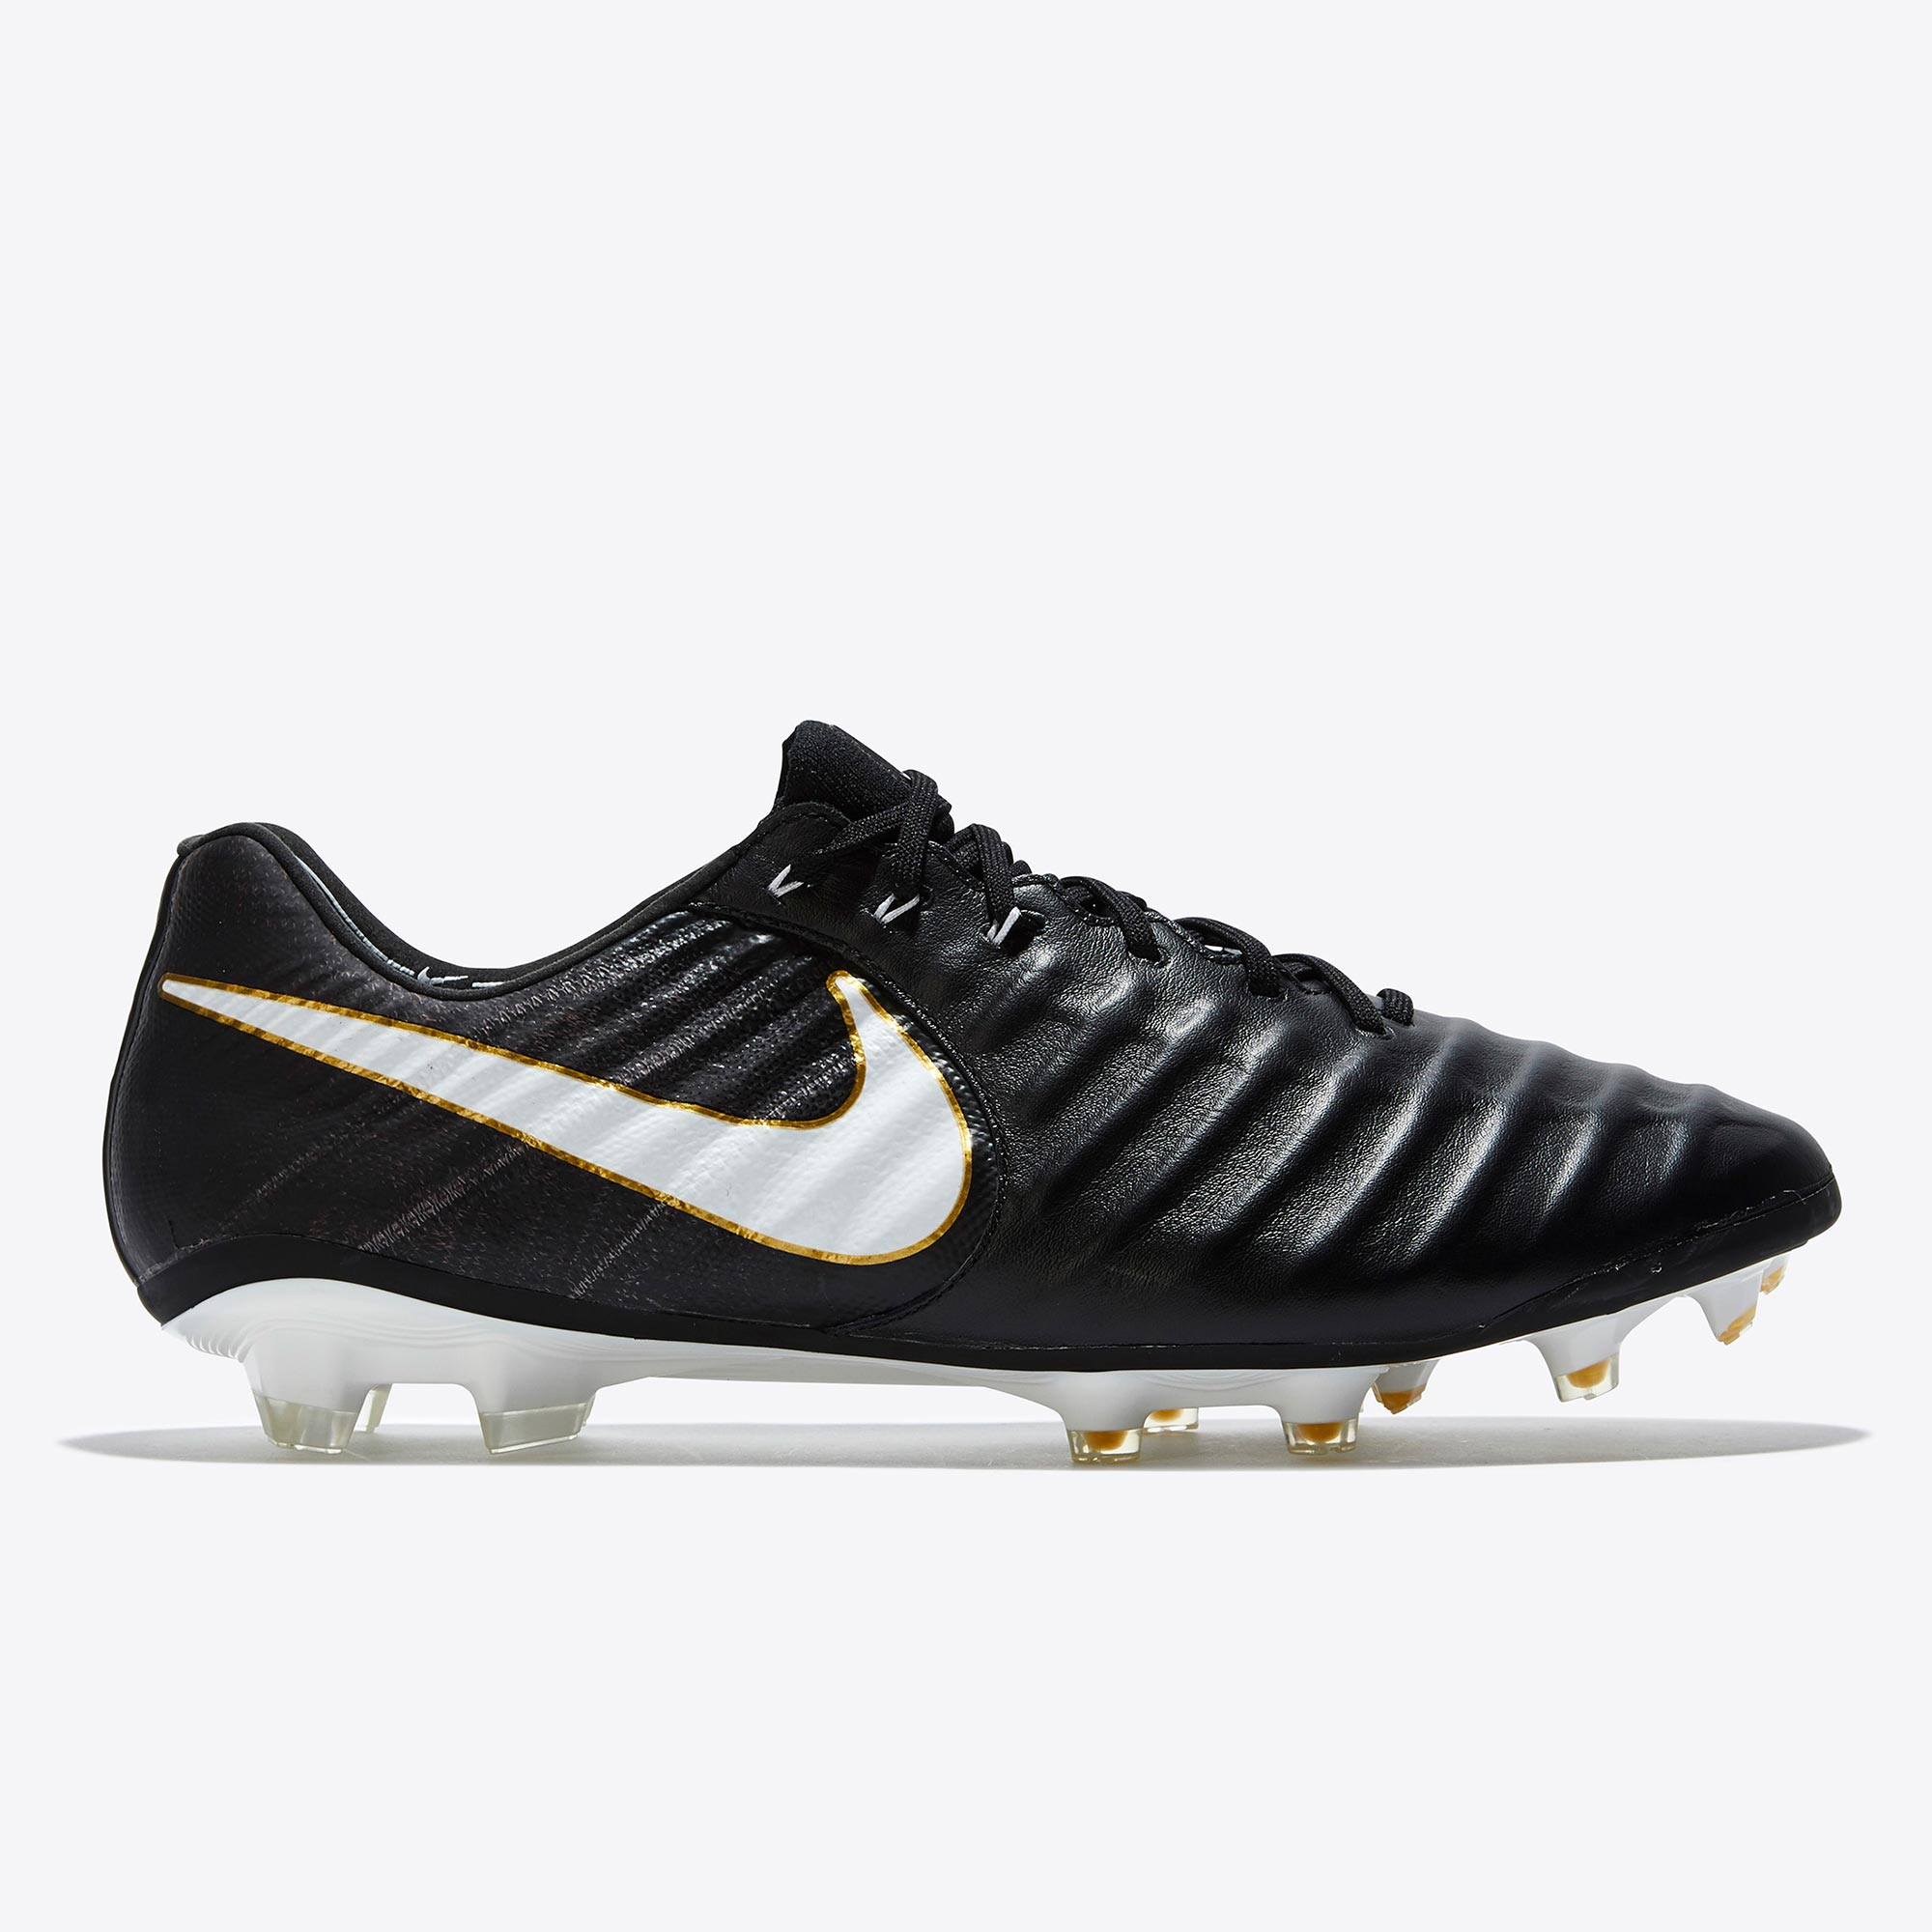 Nike Tiempo Legend VII Firm Ground Football Boots - Black/White/Black